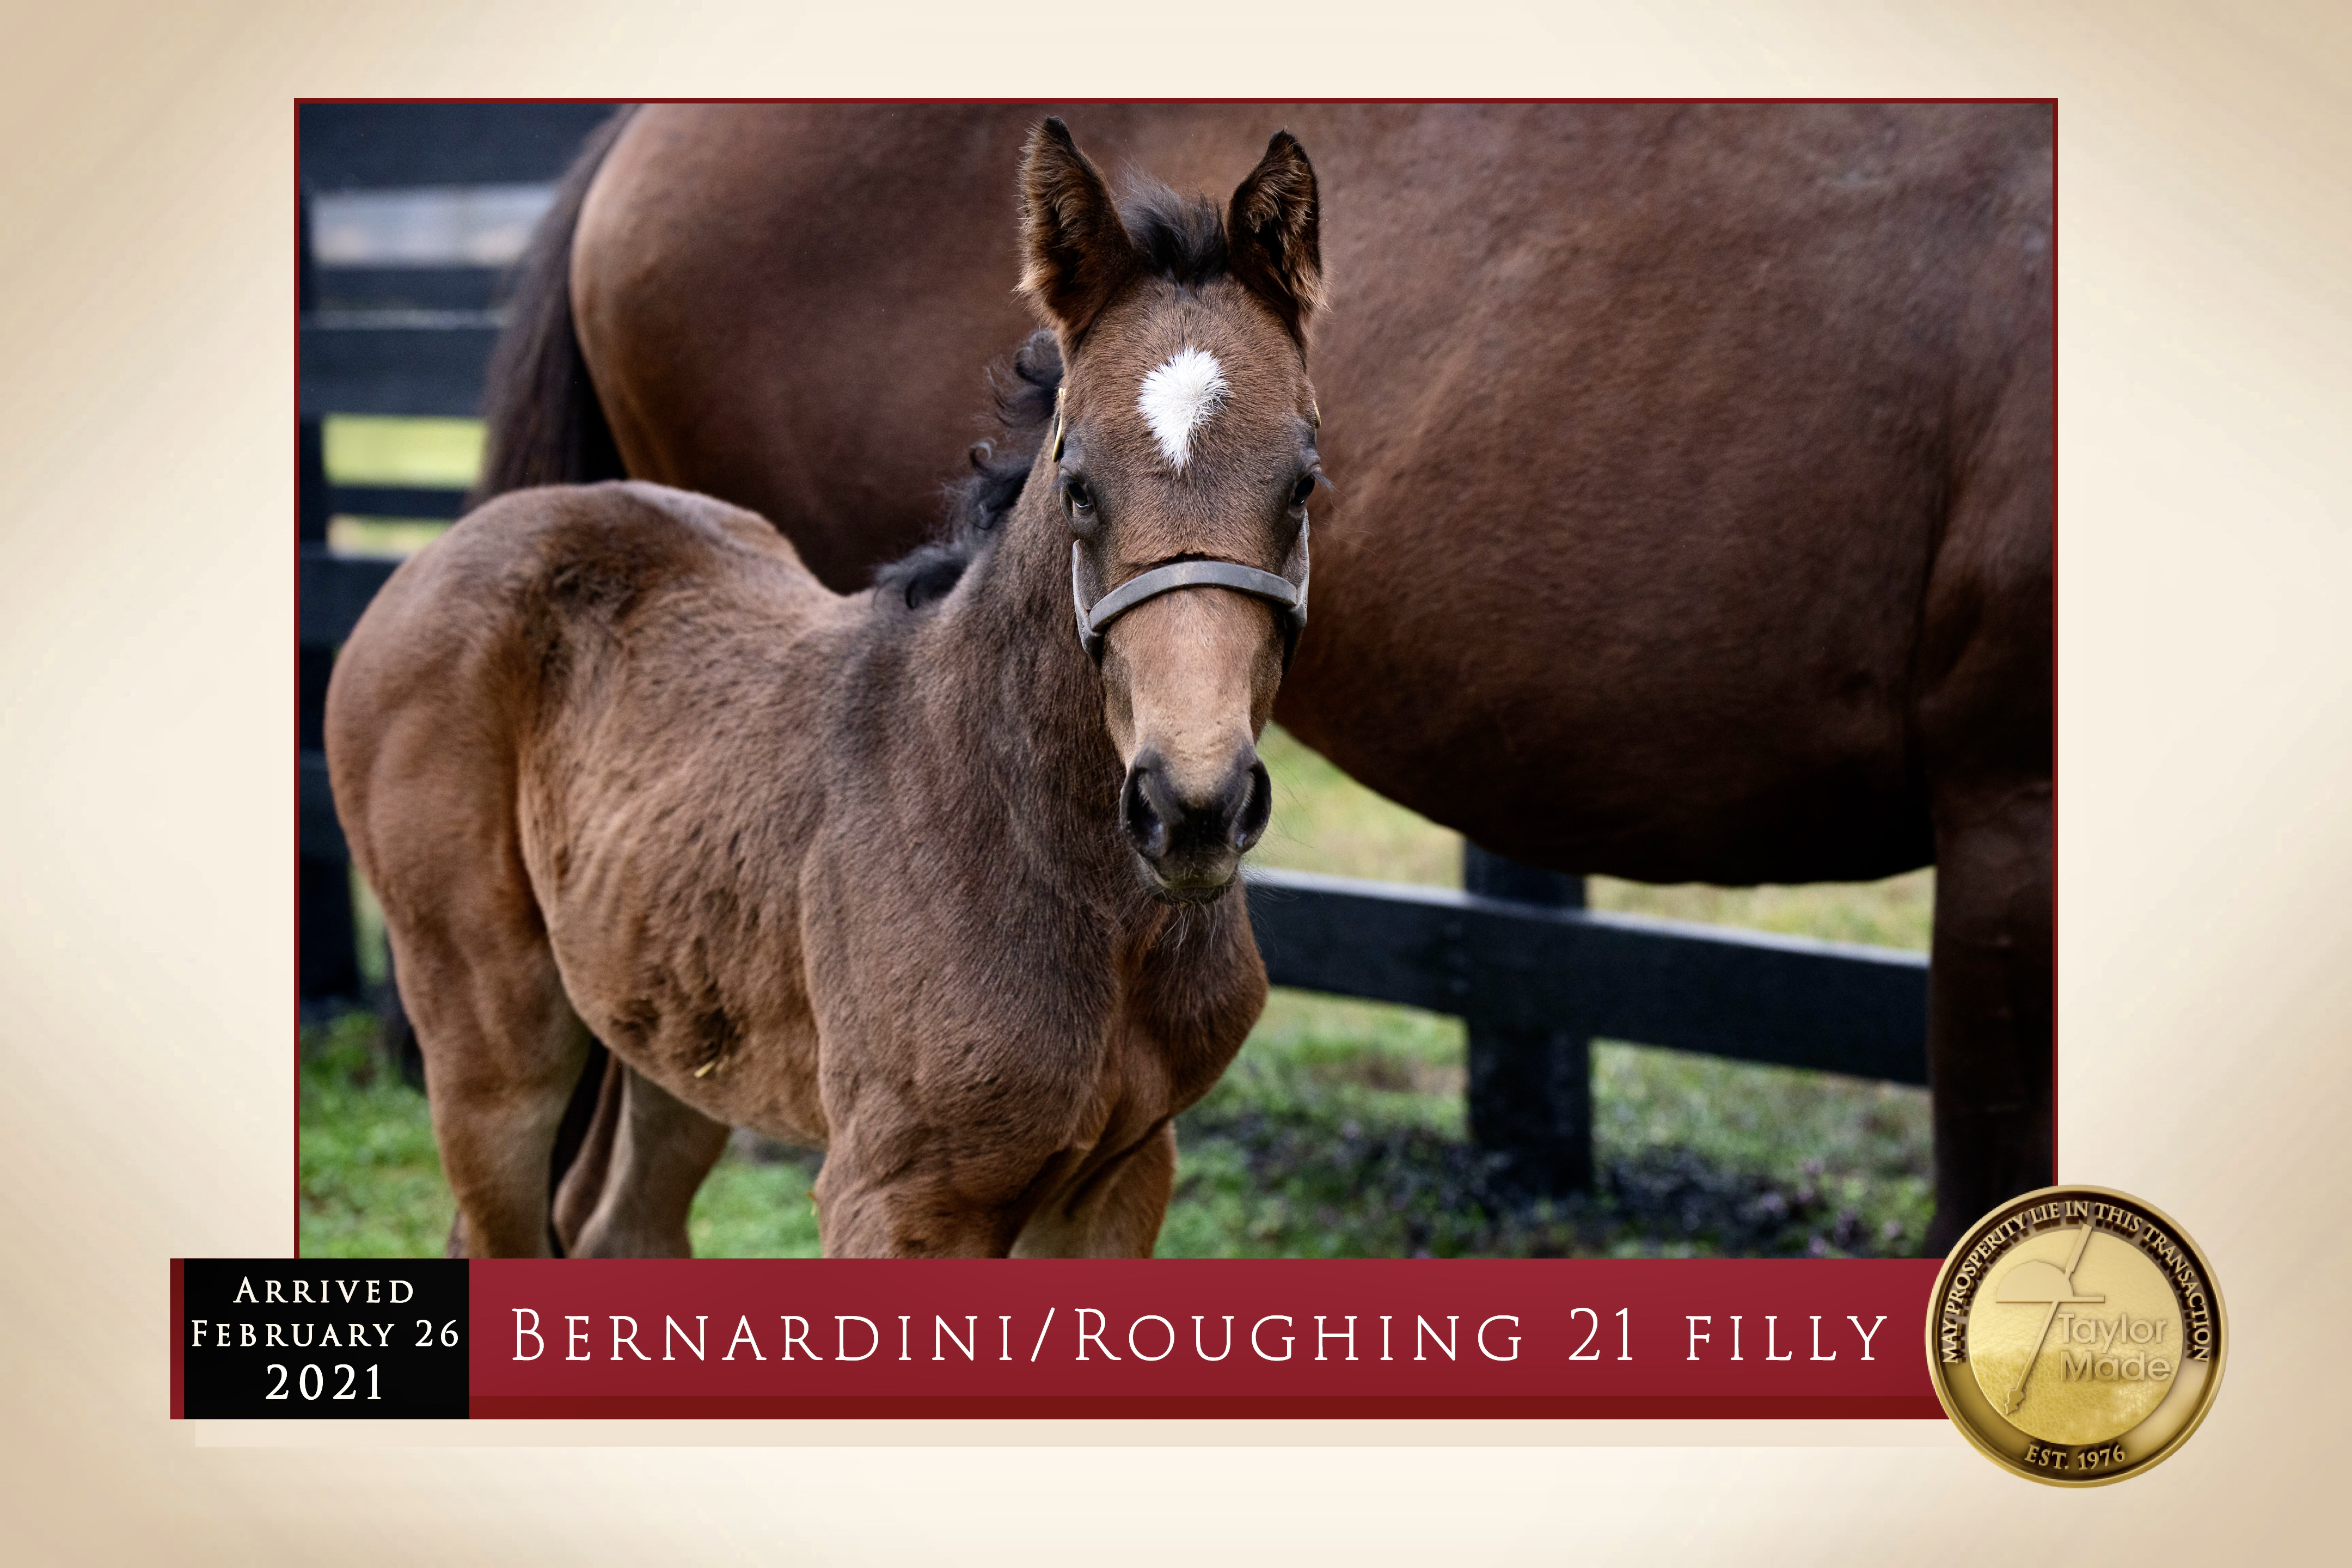 Bernardini - Roughing 2021 filly arrived February 26th.